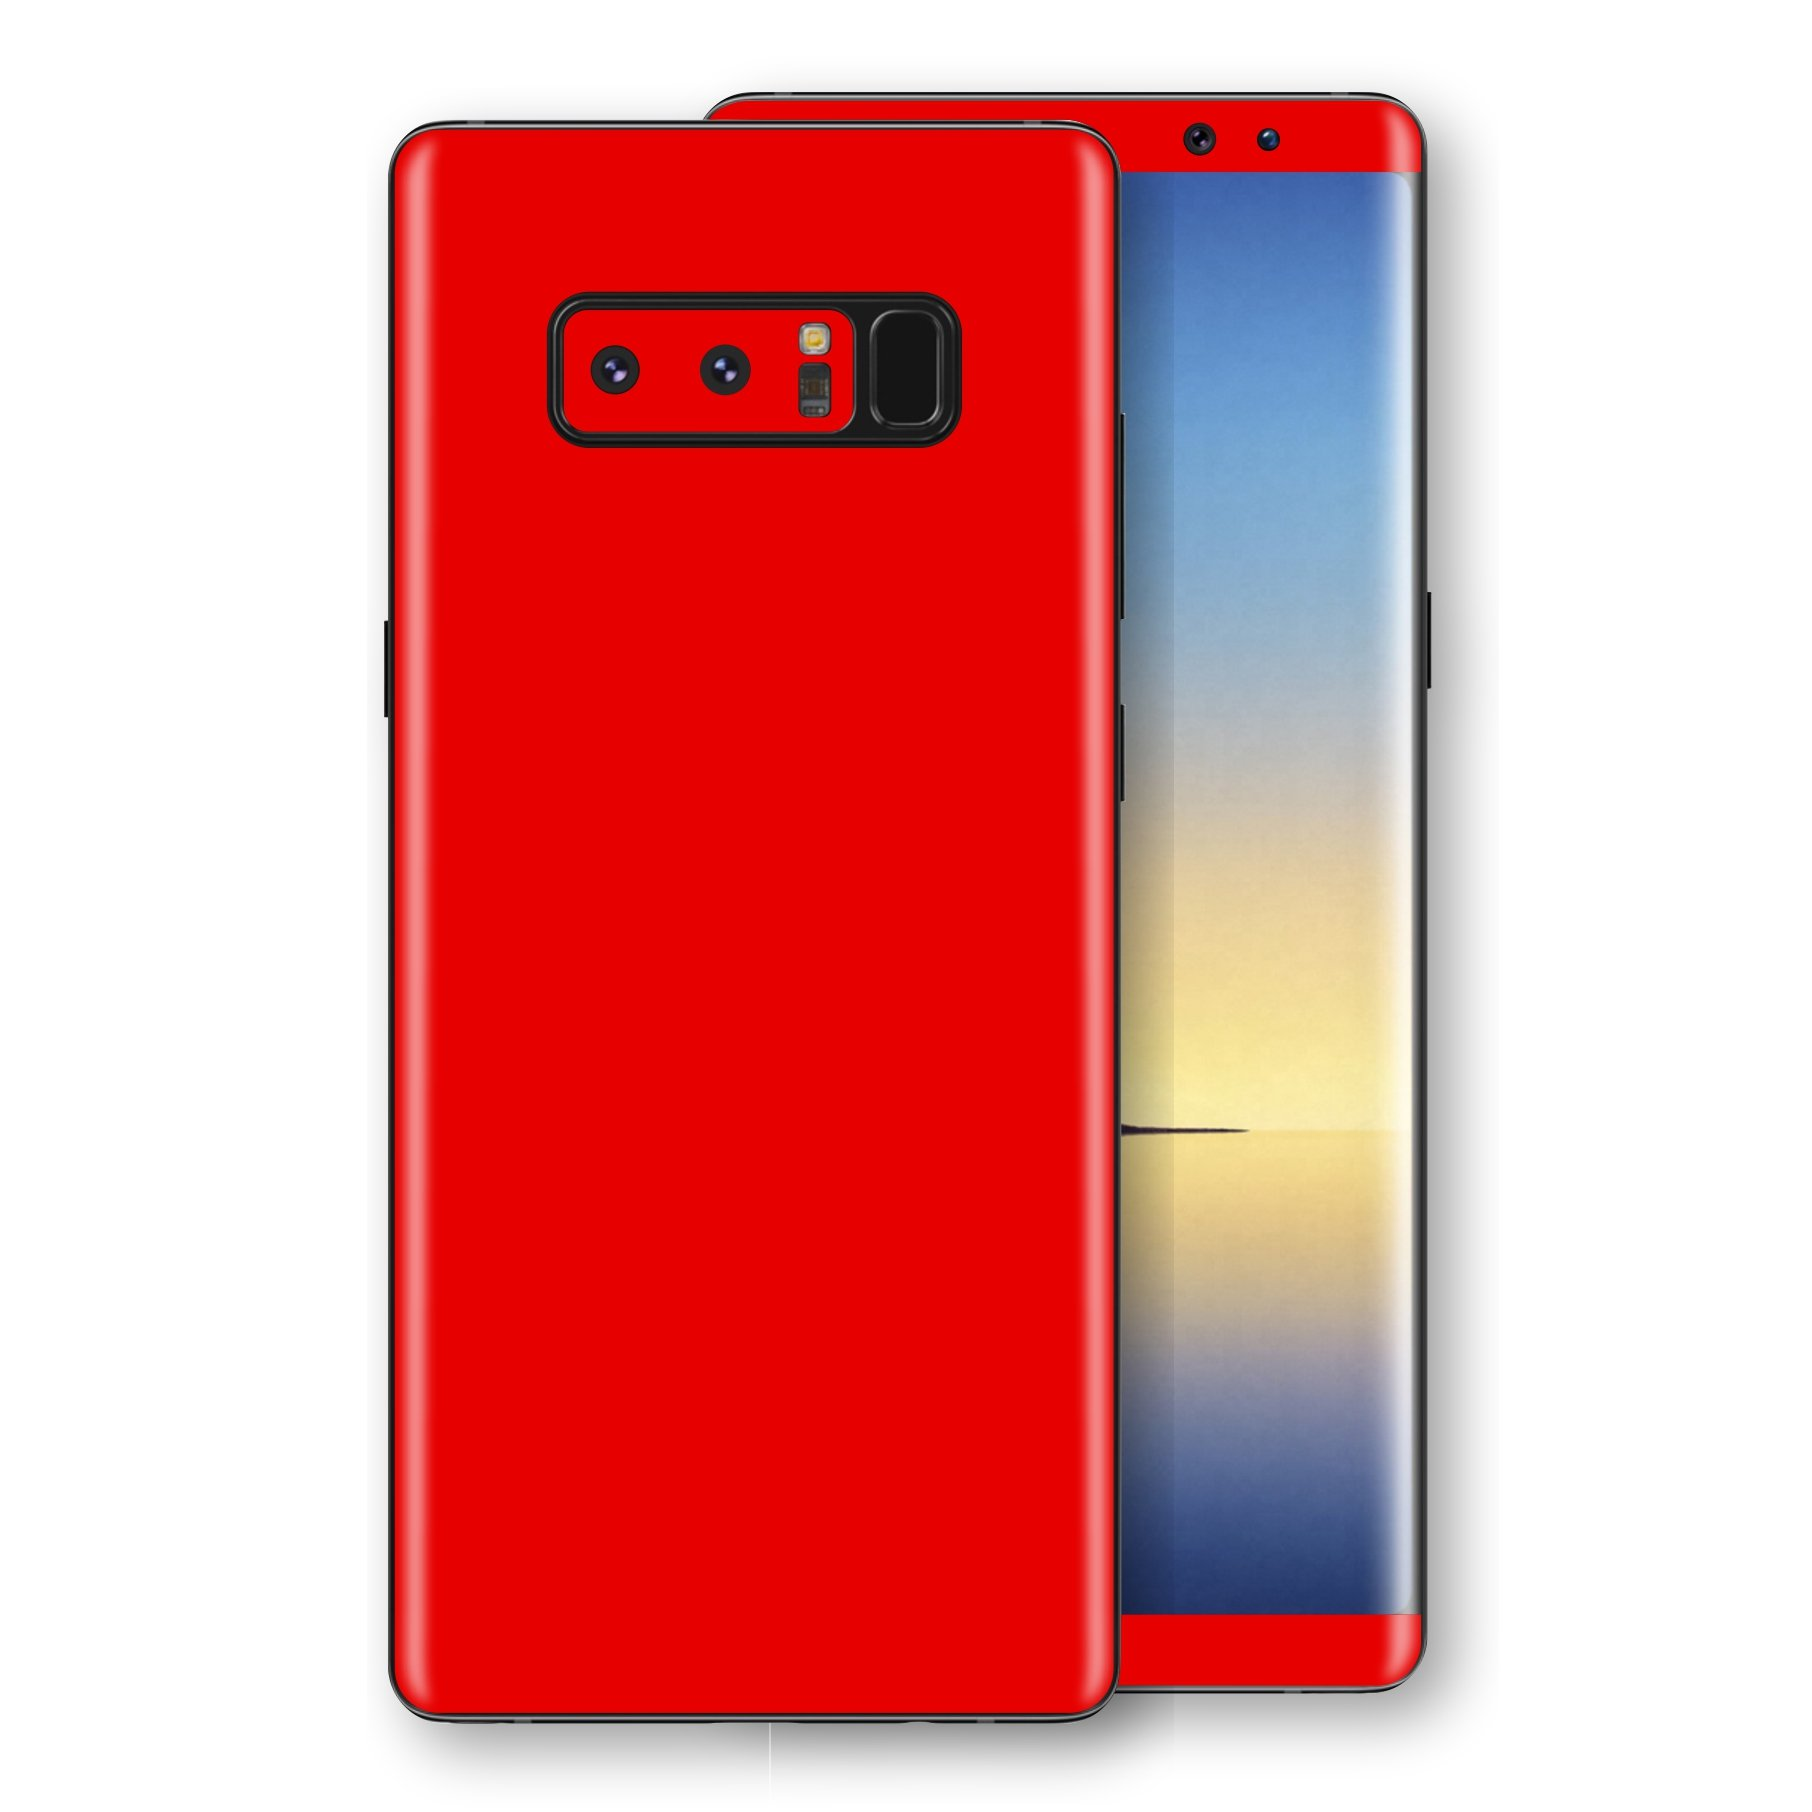 67546aabd3fa Samsung Galaxy NOTE 8 GLOSSY Bright Red Skin   Wrap   Decal – EasySkinz